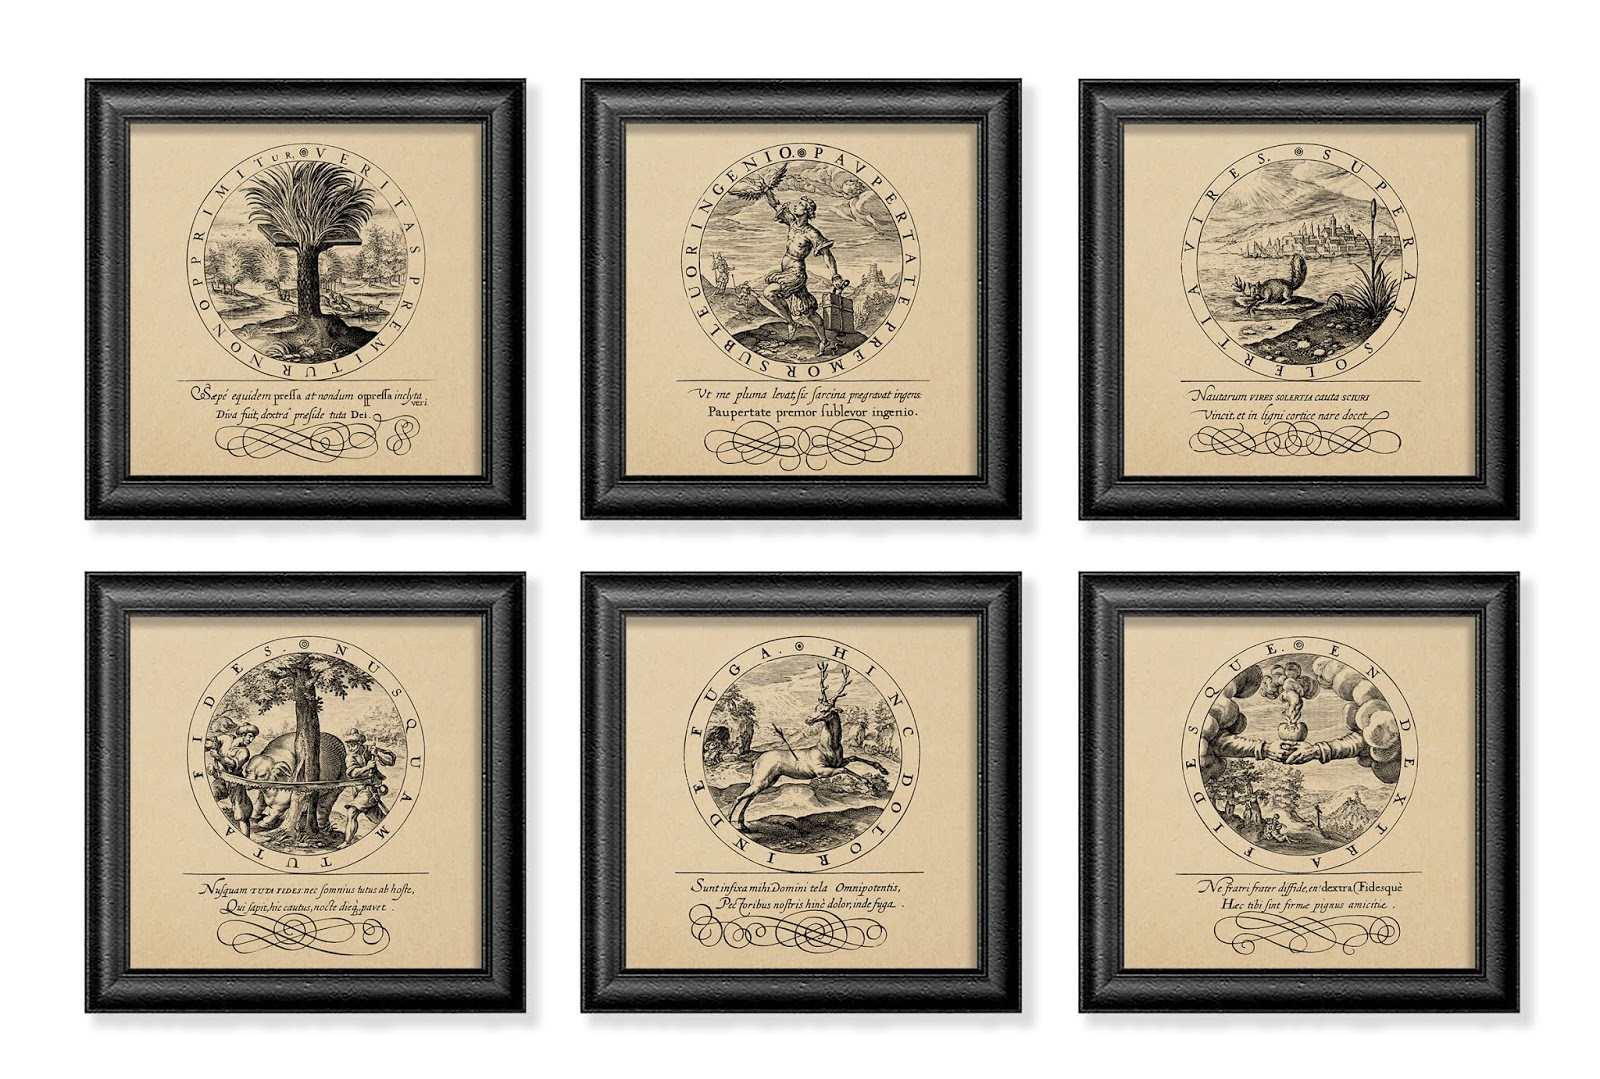 Details about vintage style prints set of 6 rustic wall art decor old book pages illustration